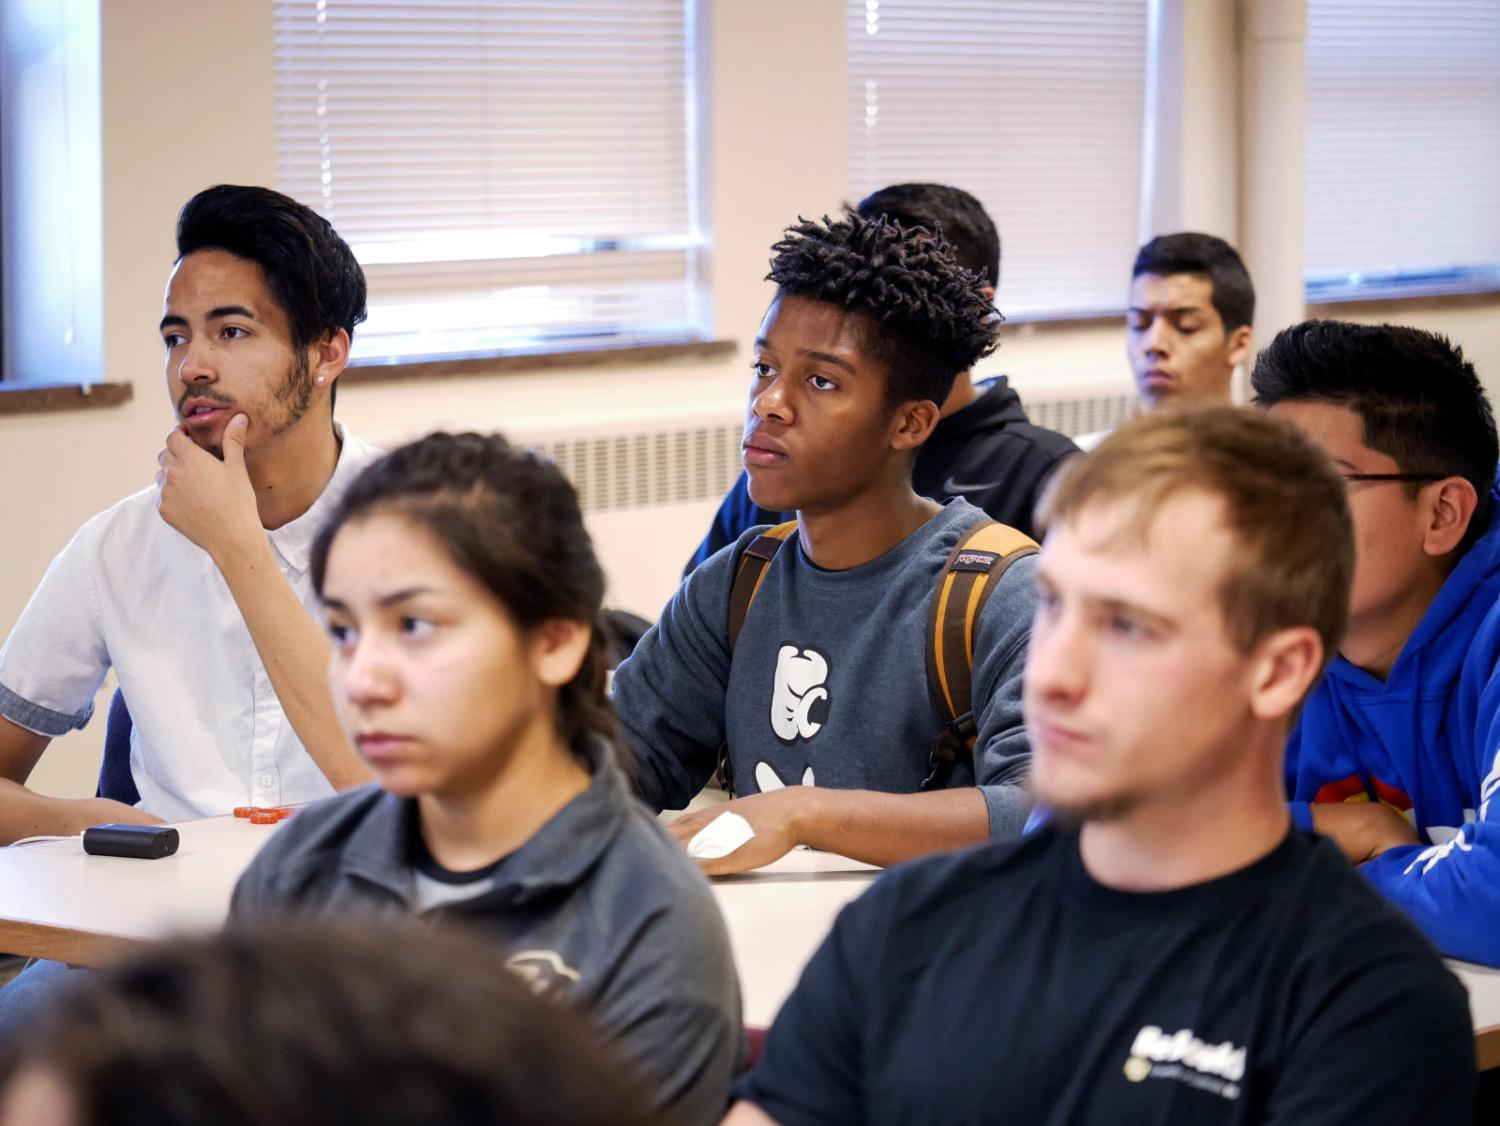 Students listening during a class lecture